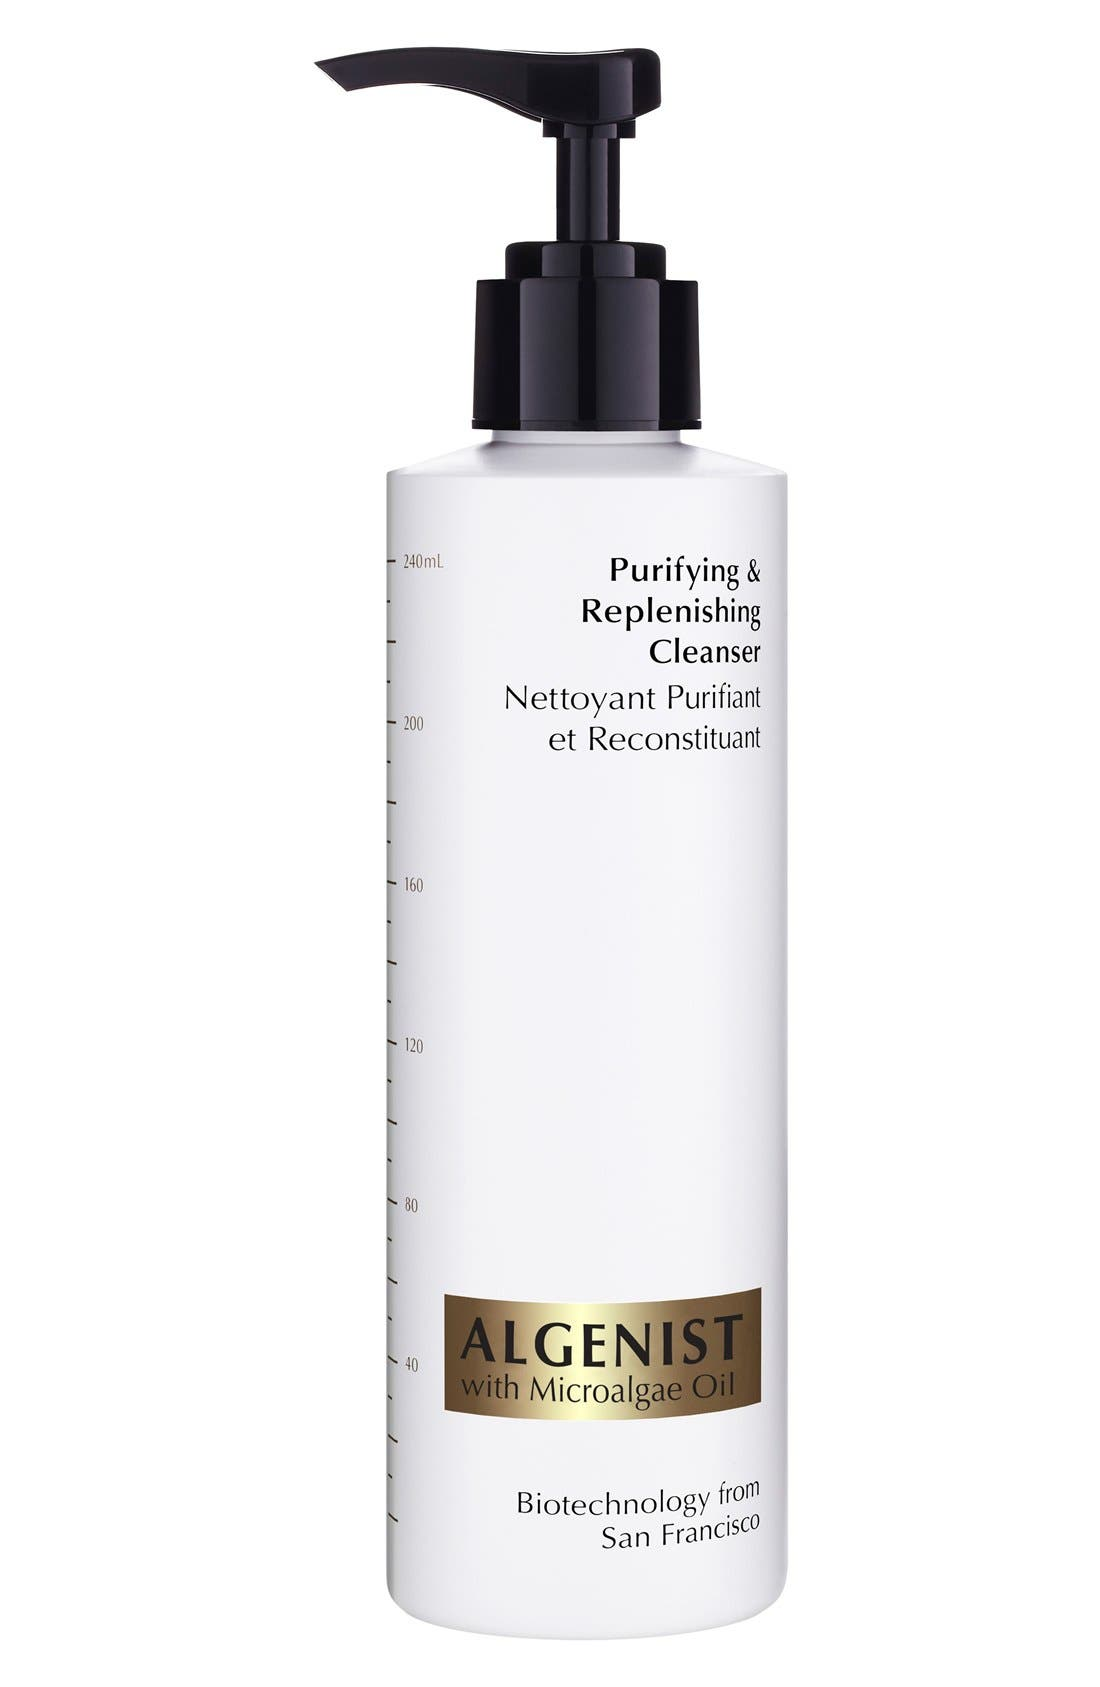 Algenist 'Purifying & Replenishing' Cleanser